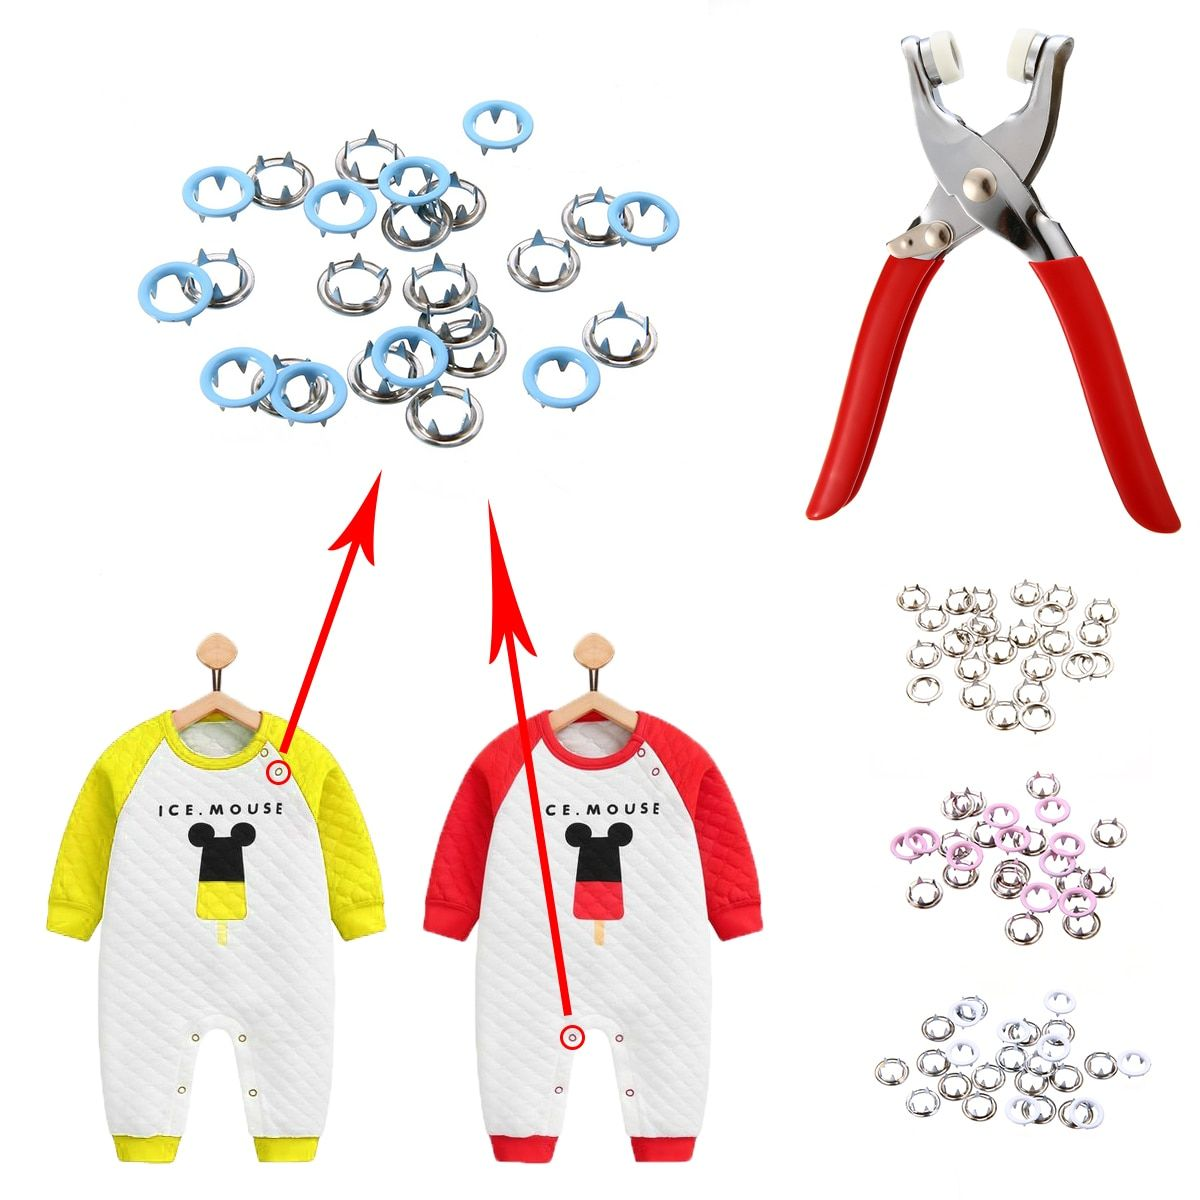 1pc Plier Tool+200pcs 9.5mm Metal Prong Snap Buttons Mayitr Fasteners Press Studs Popper Baby Romper Buckle Snap+2pcs Rubber